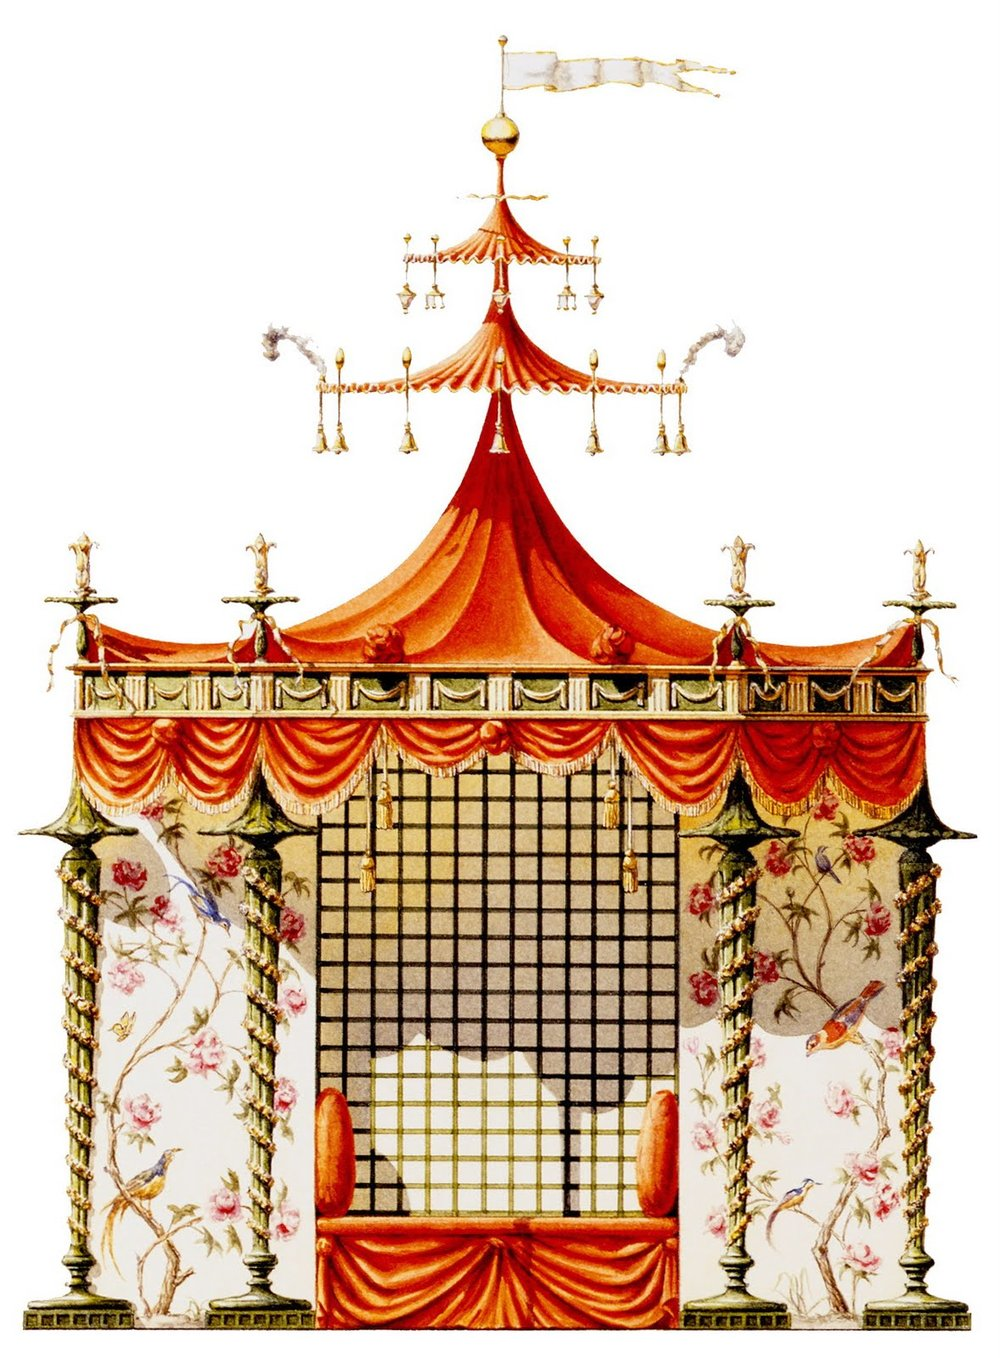 A watercolour rendition by Andrew Zega and Bernd H. Dams of the Chinese Tent for Trianon, designed 1780 and commissioned by Marie-Antoinette, conceived to embellish her gardens at Trianon. Zega and Dams, skilled artists, architects and historians delve into the fanciful and exotic Chinoiserie style of Europe of the mid to late eighteenth century.